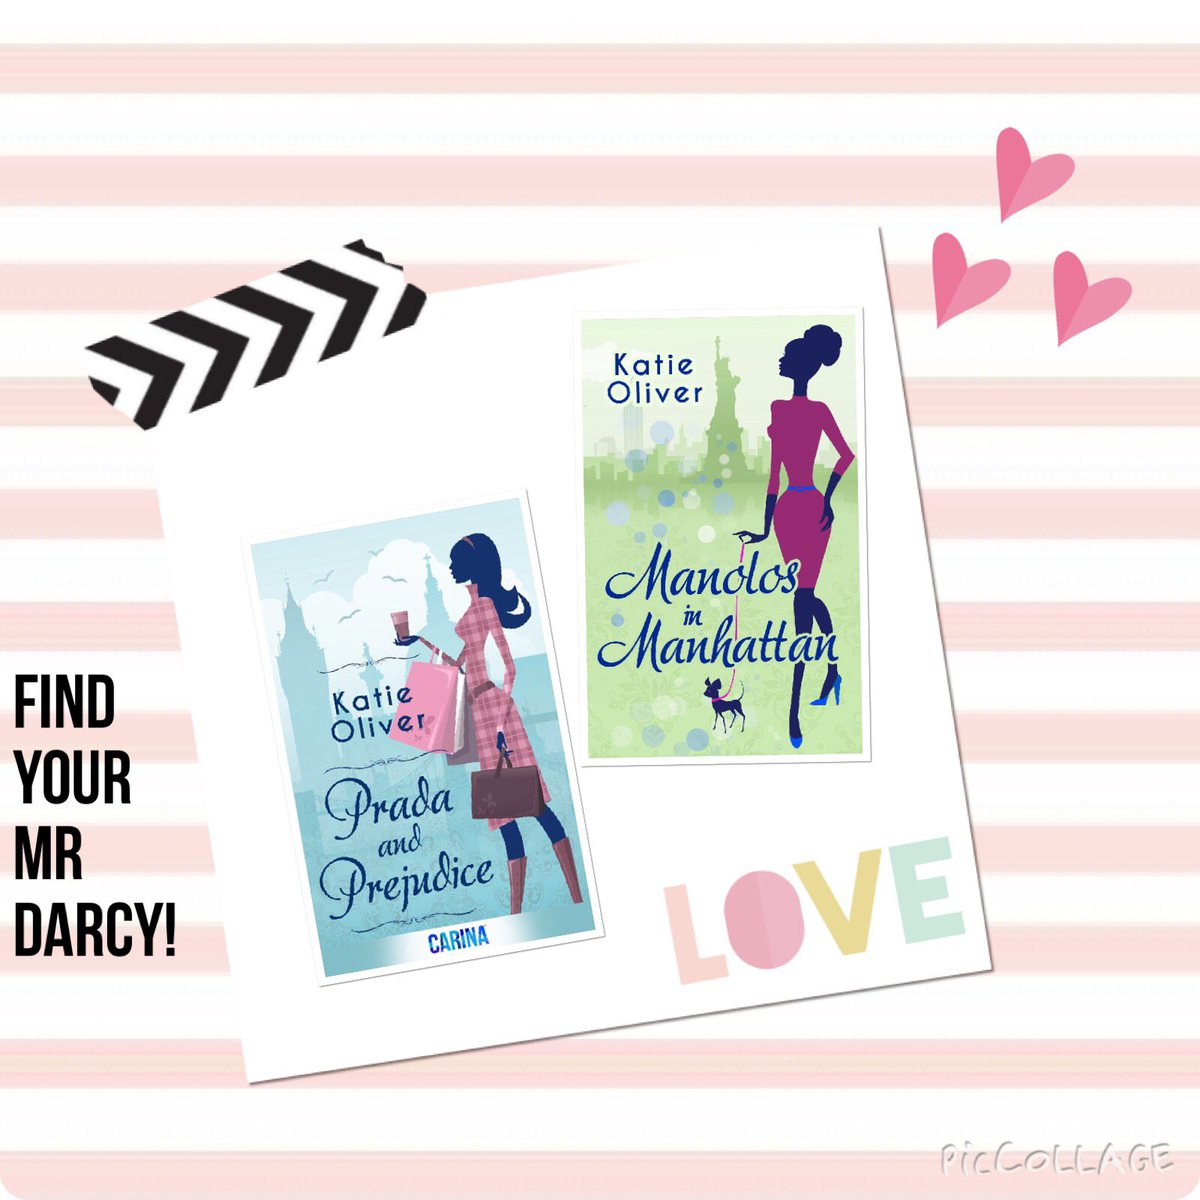 Fancy a bit of British Chick Lit?   Dating Mr Darcy series #friyay #Kindle    https://www. amazon.com/gp/product/B00 VZJ0NHA/ref=series_rw_dp_sw &nbsp; …    https://www. amazon.co.uk/gp/product/B00 VZJ0NHA/ref=series_rw_dp_sw &nbsp; … <br>http://pic.twitter.com/GlBjK0Rsrh